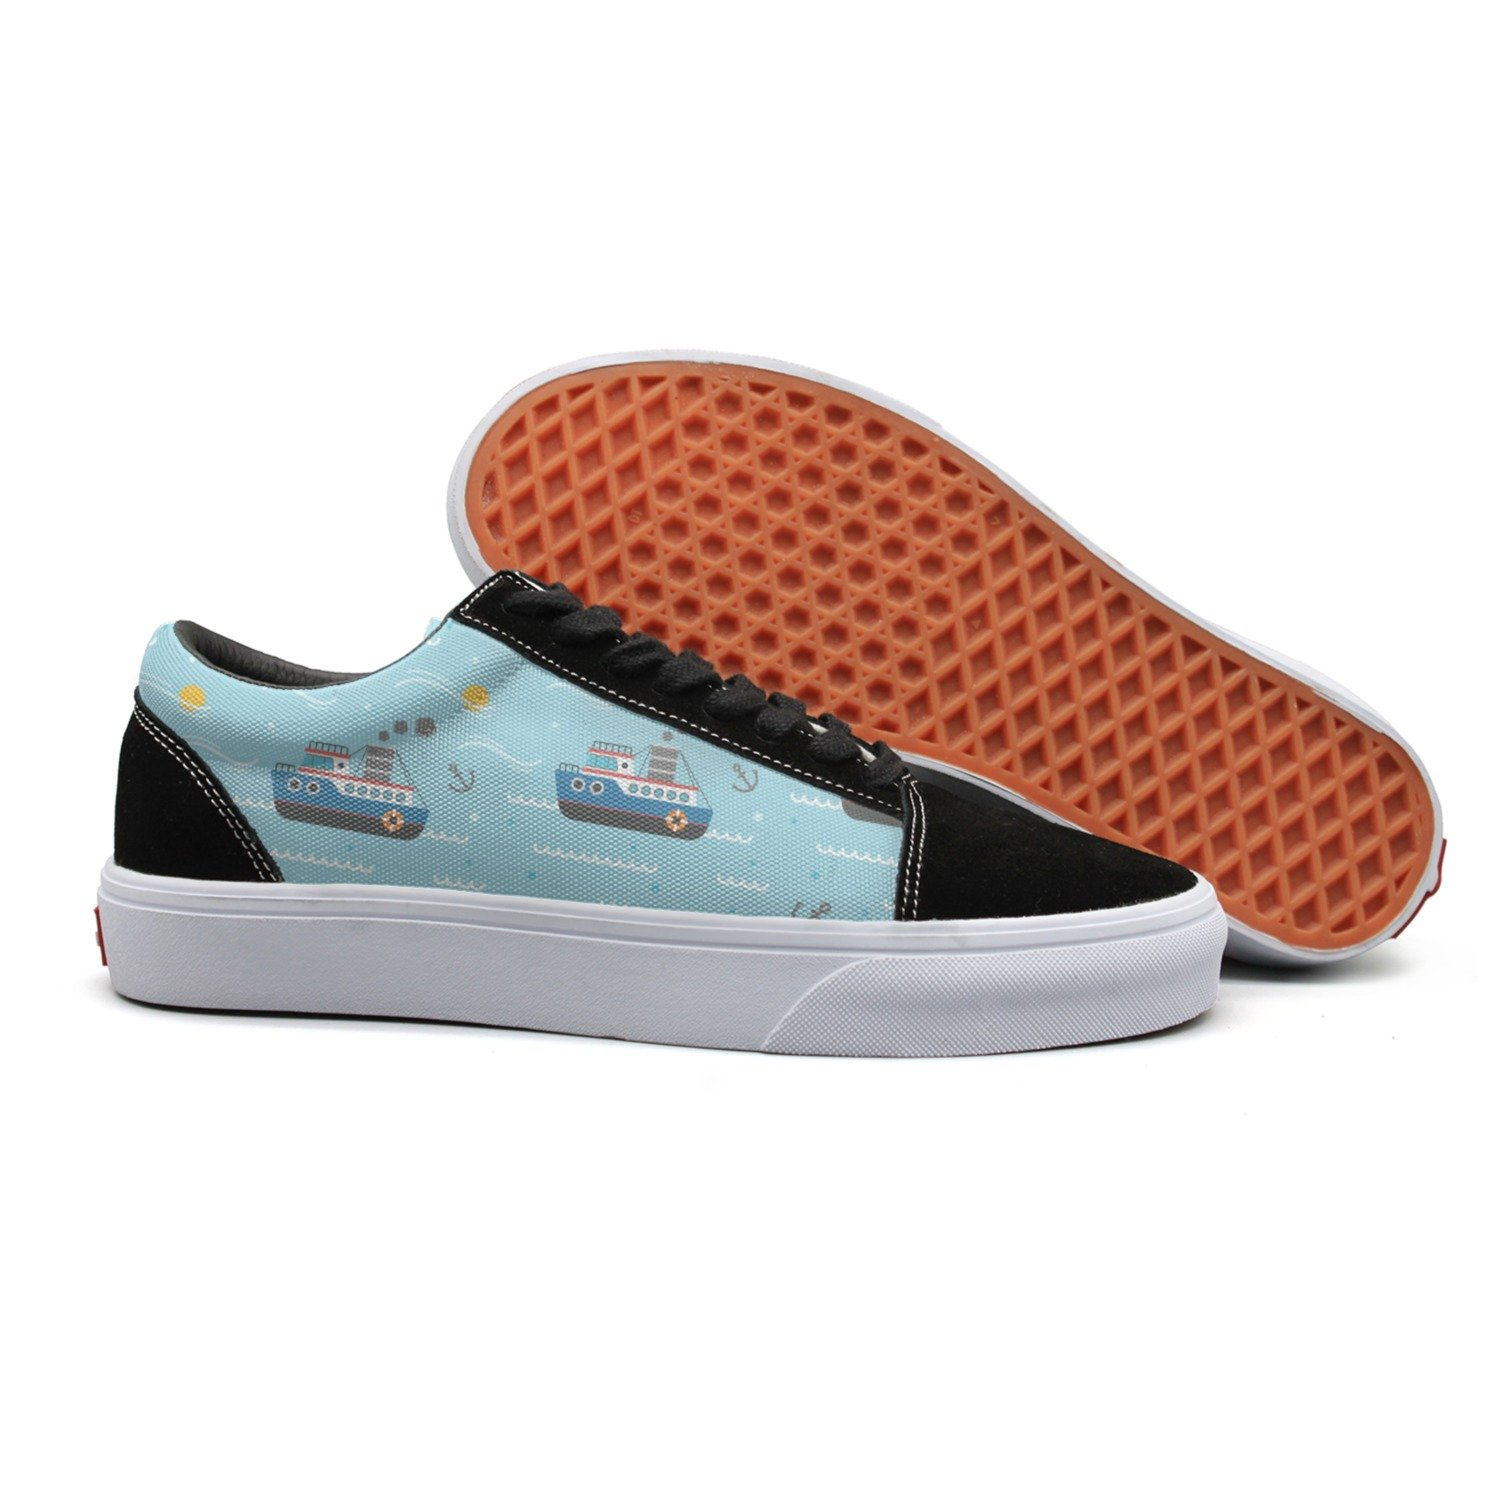 VCERTHDF Print Trendy Nautical Boat Anchor Wave-01 Low Top Canvas Sneakers